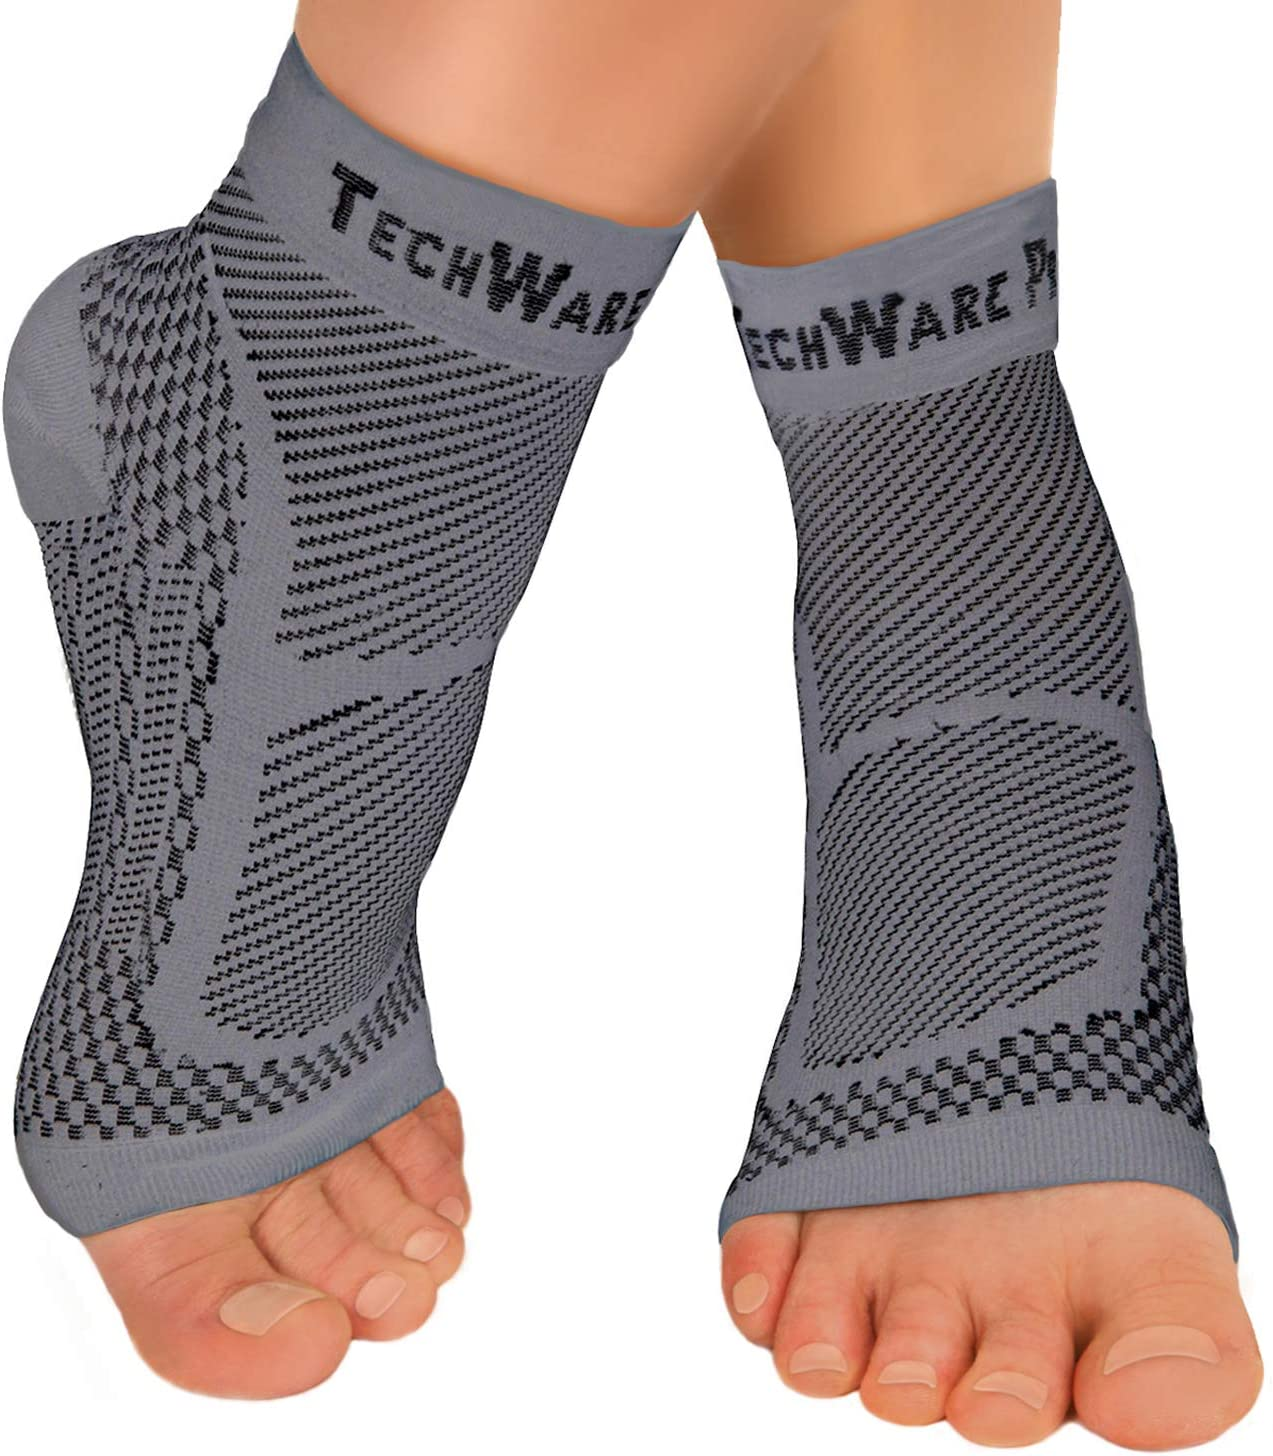 TechWare Pro Ankle Brace Minneapolis Mall Compression Sleeve Achilles Rapid rise Relieves -